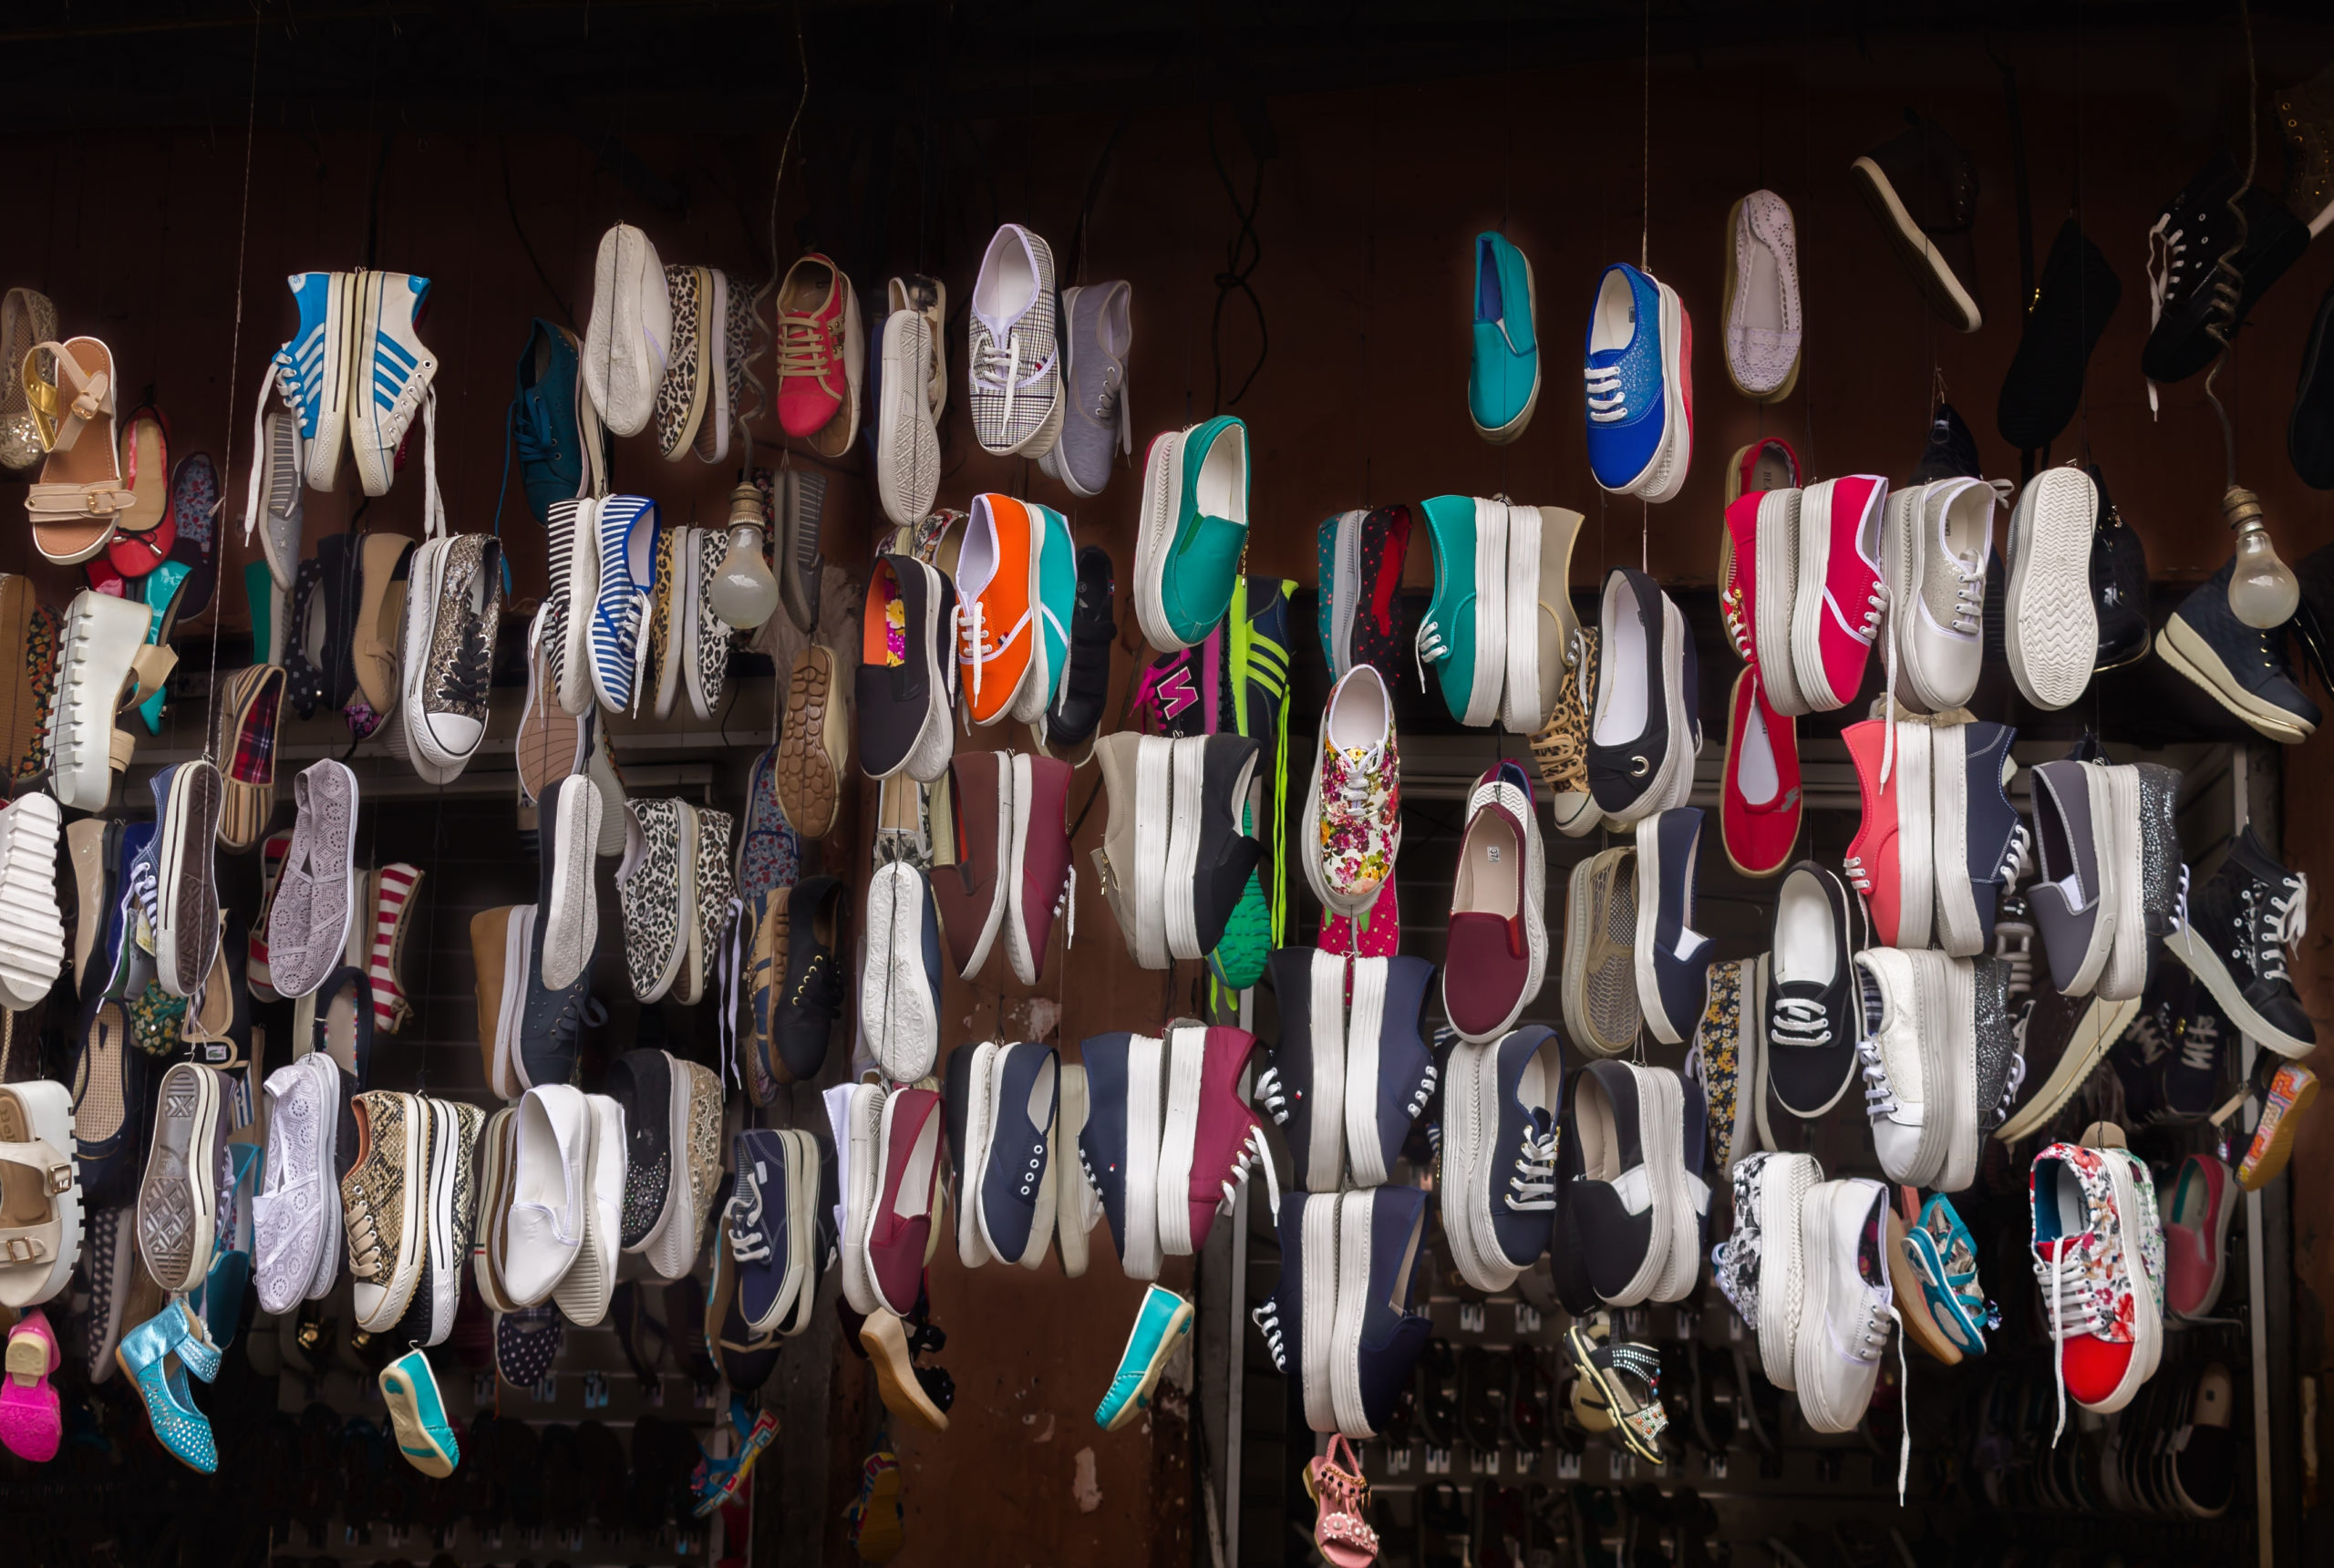 Lots of different shoes hanging on the rope in the showcase of market